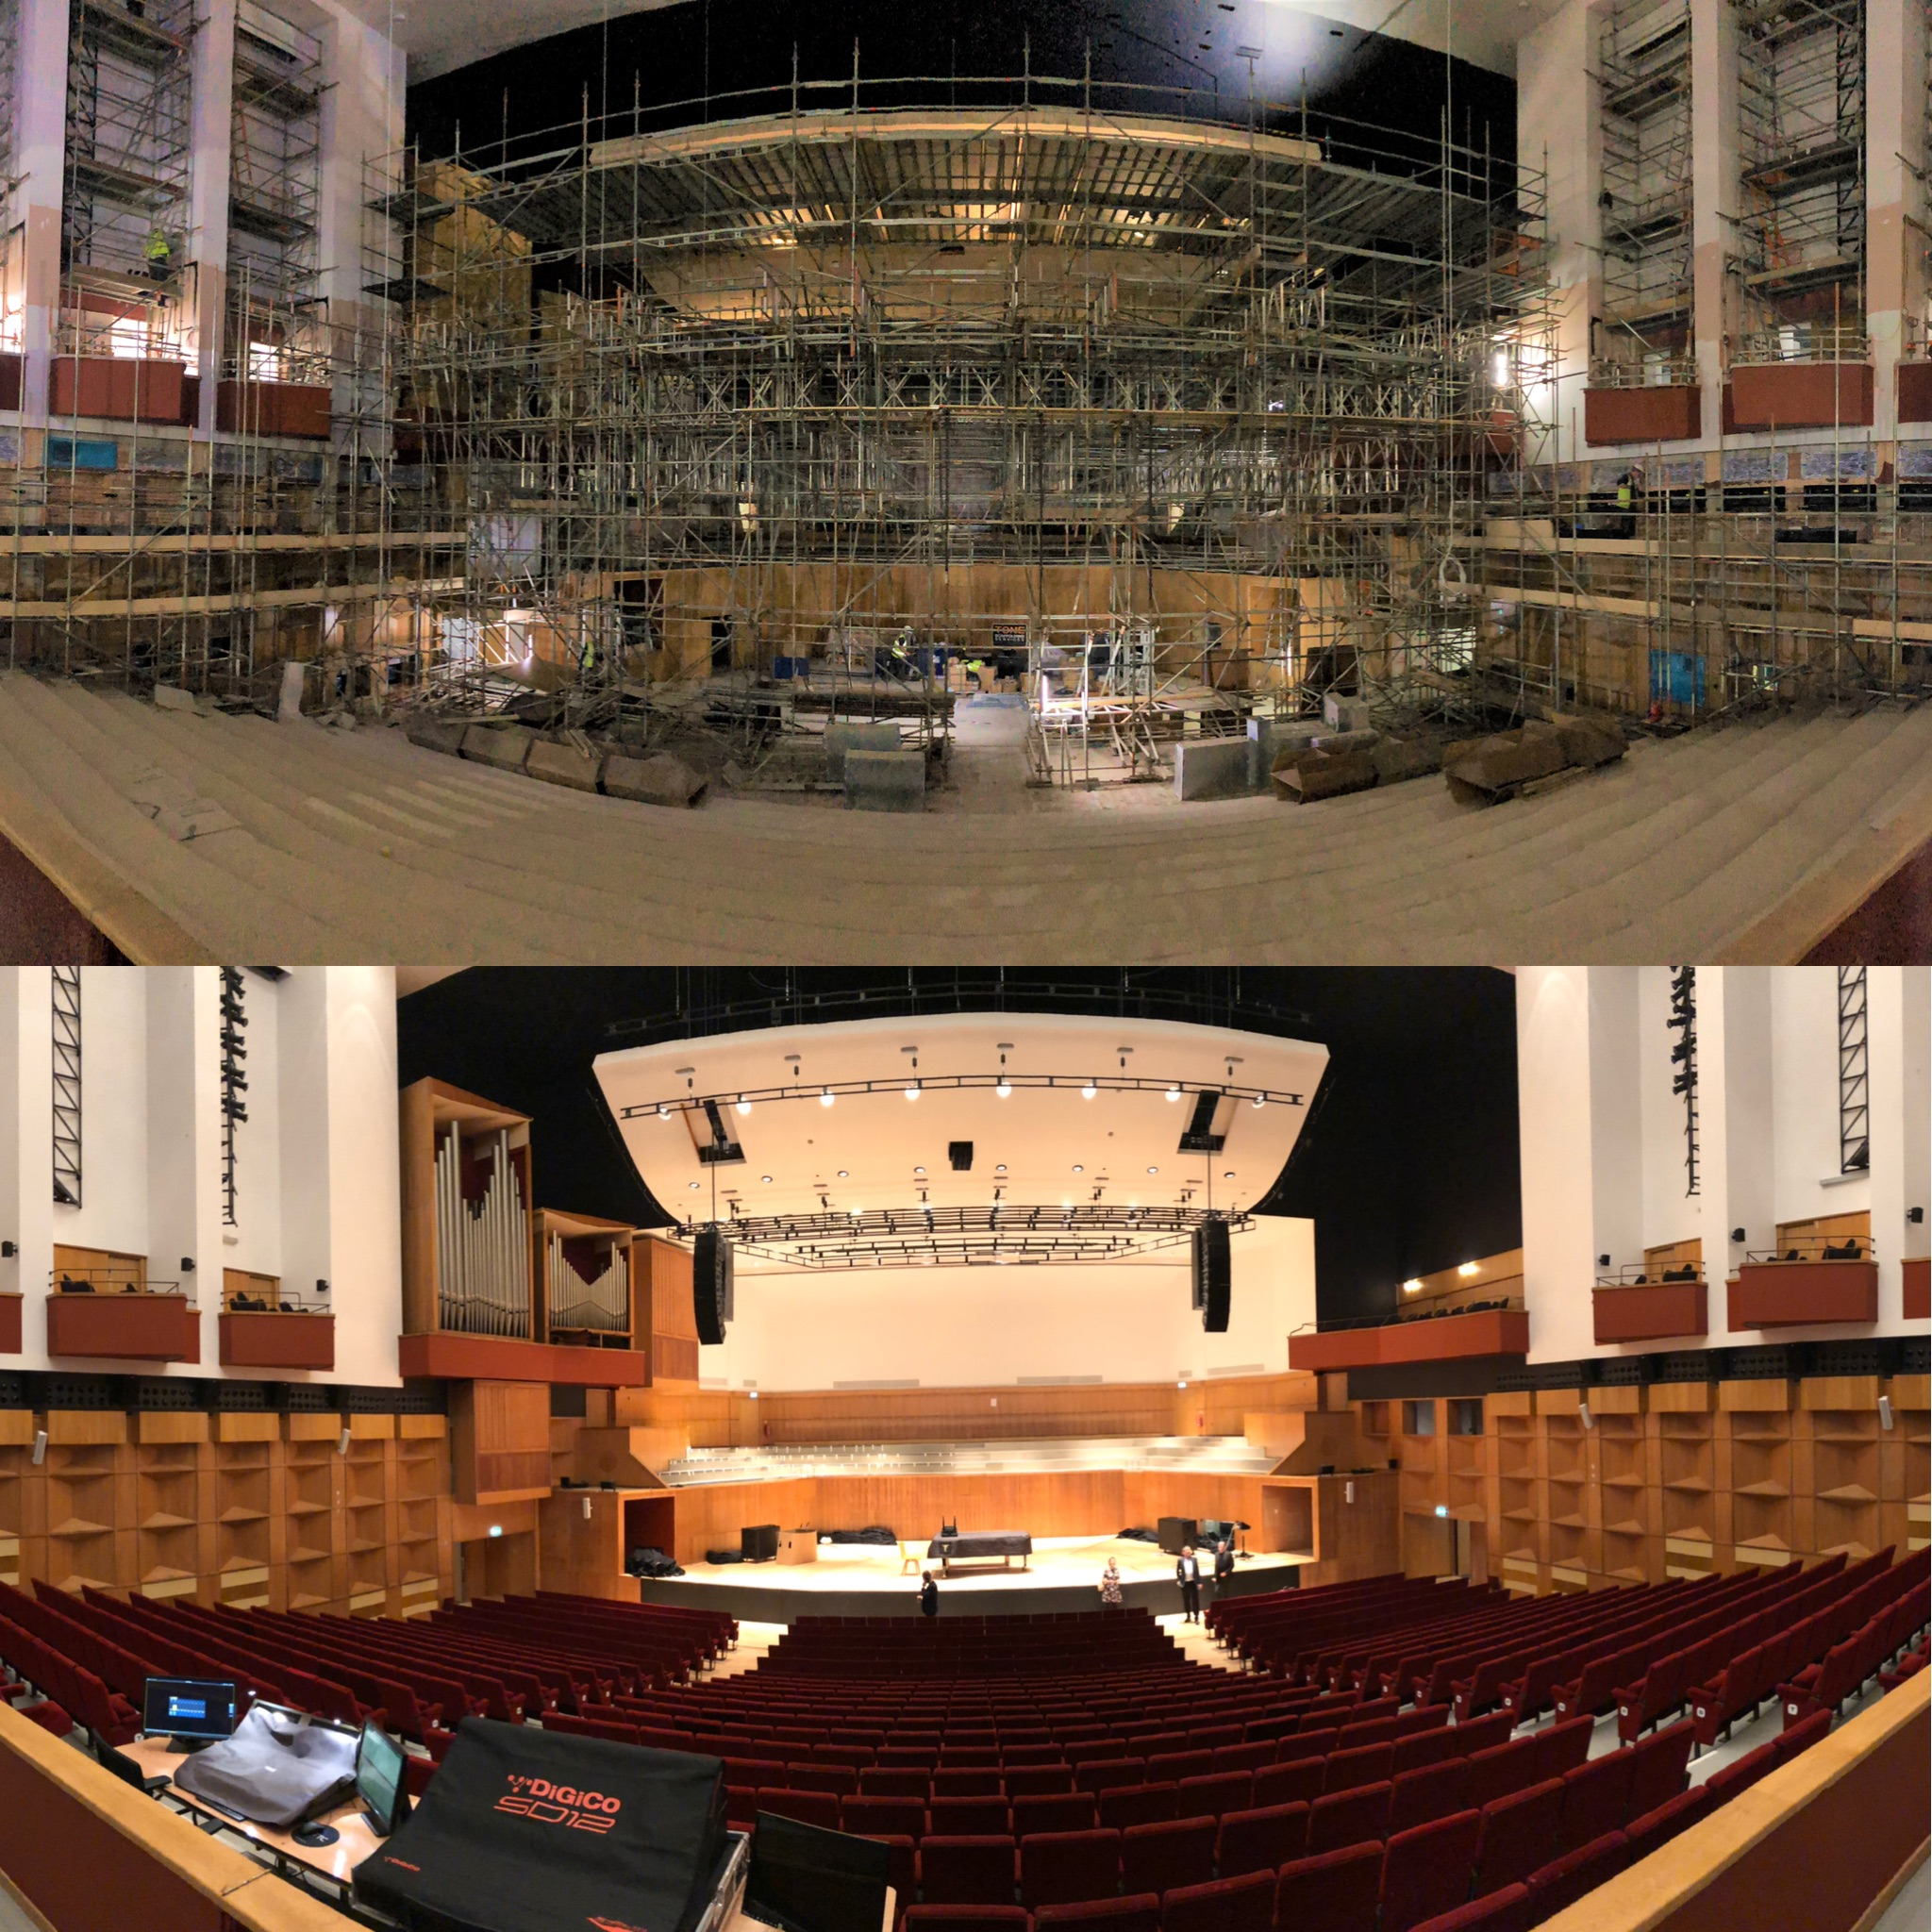 Before and after - Top was how the Phoenix Concert Hall looked in June 2019. Jump forward 3 months to September 2019 and look at how incredible it looks. What a transformation.